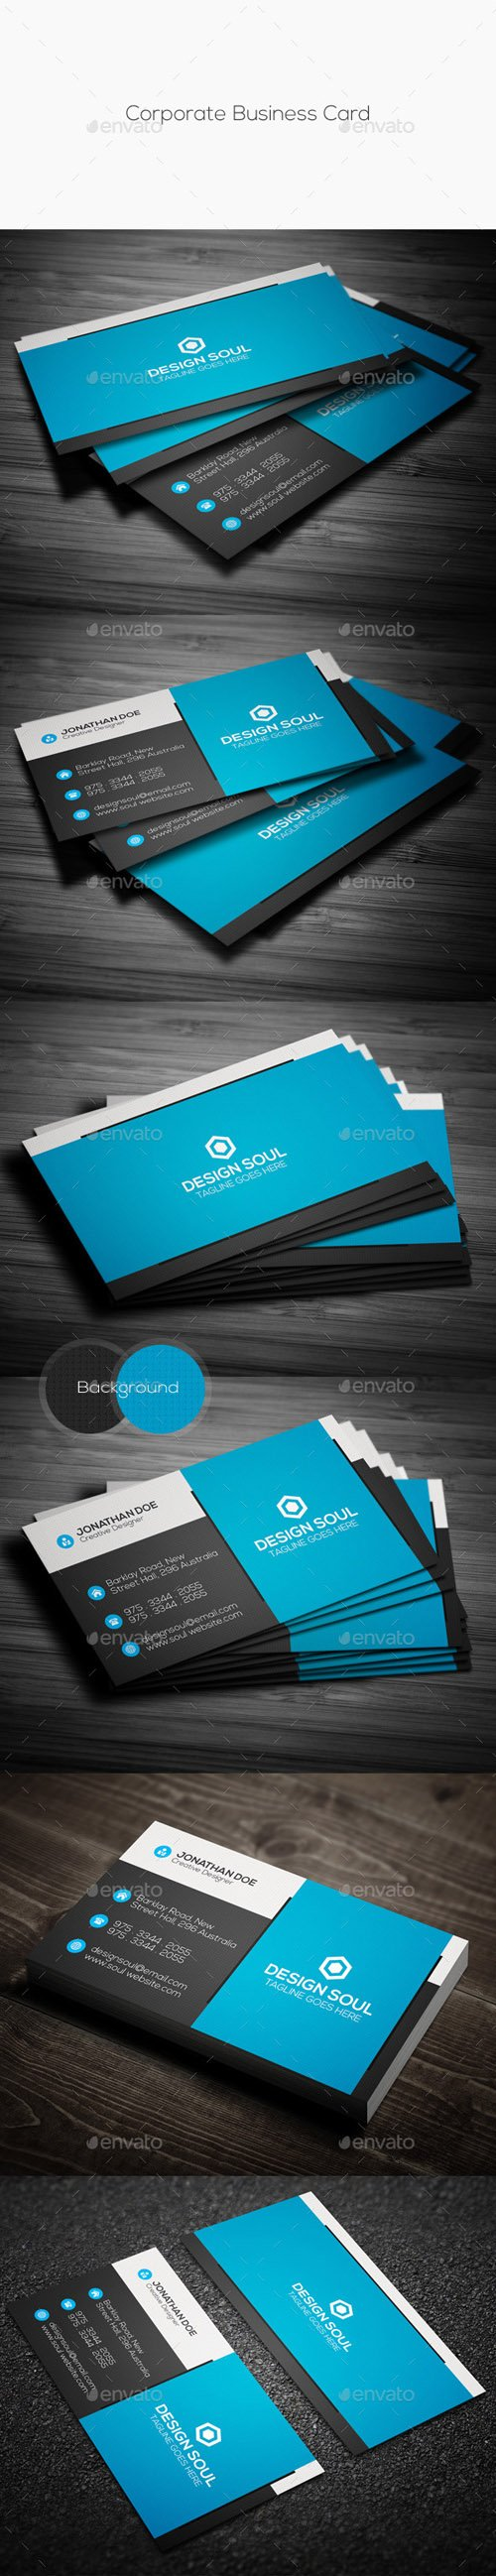 GR - Corporate Business Card 11718457